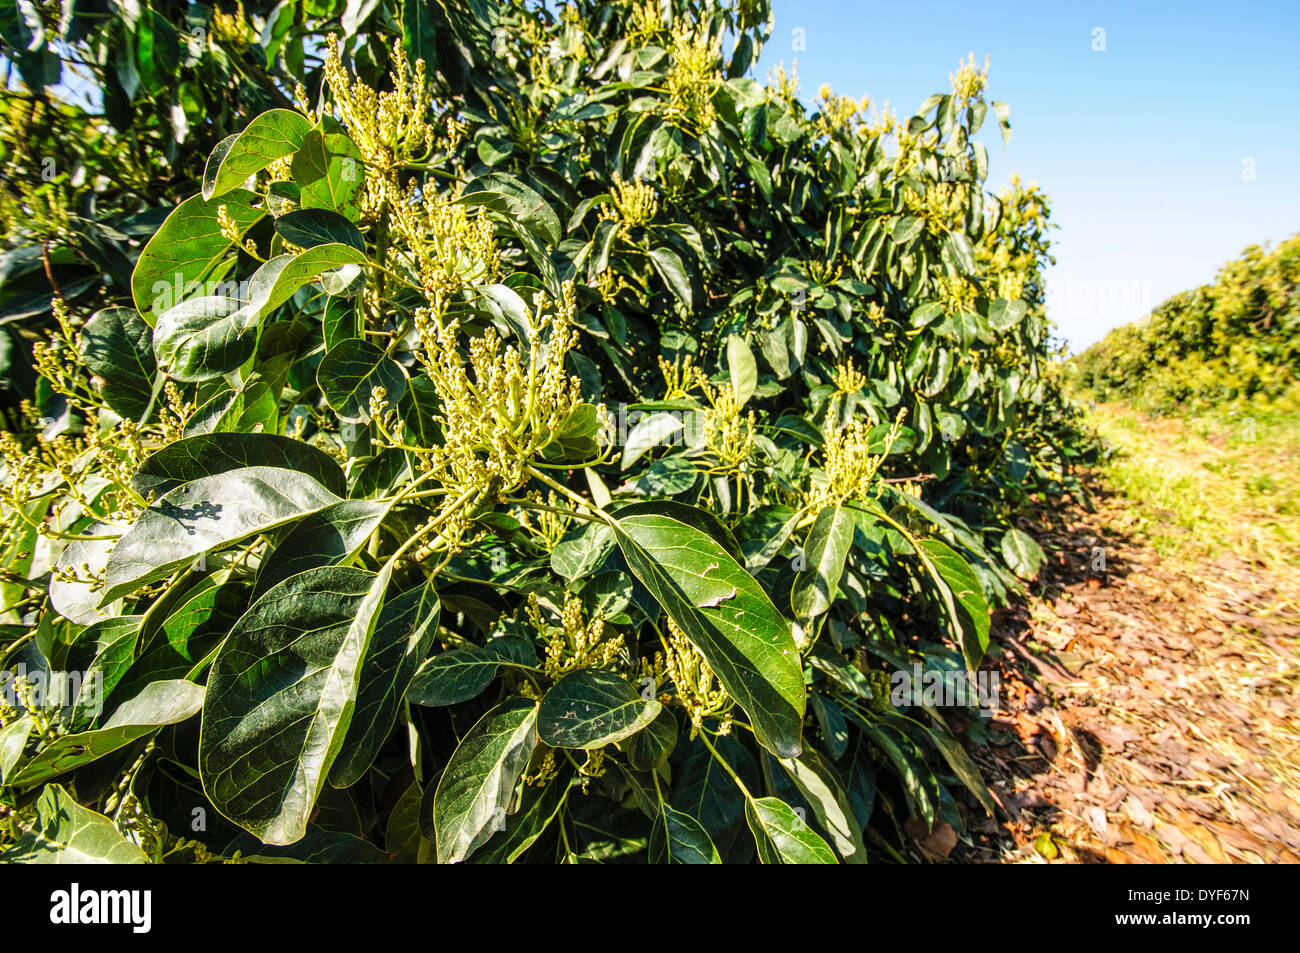 avocado plantation photographed in israel in march stock photo royalty free image 68561017. Black Bedroom Furniture Sets. Home Design Ideas